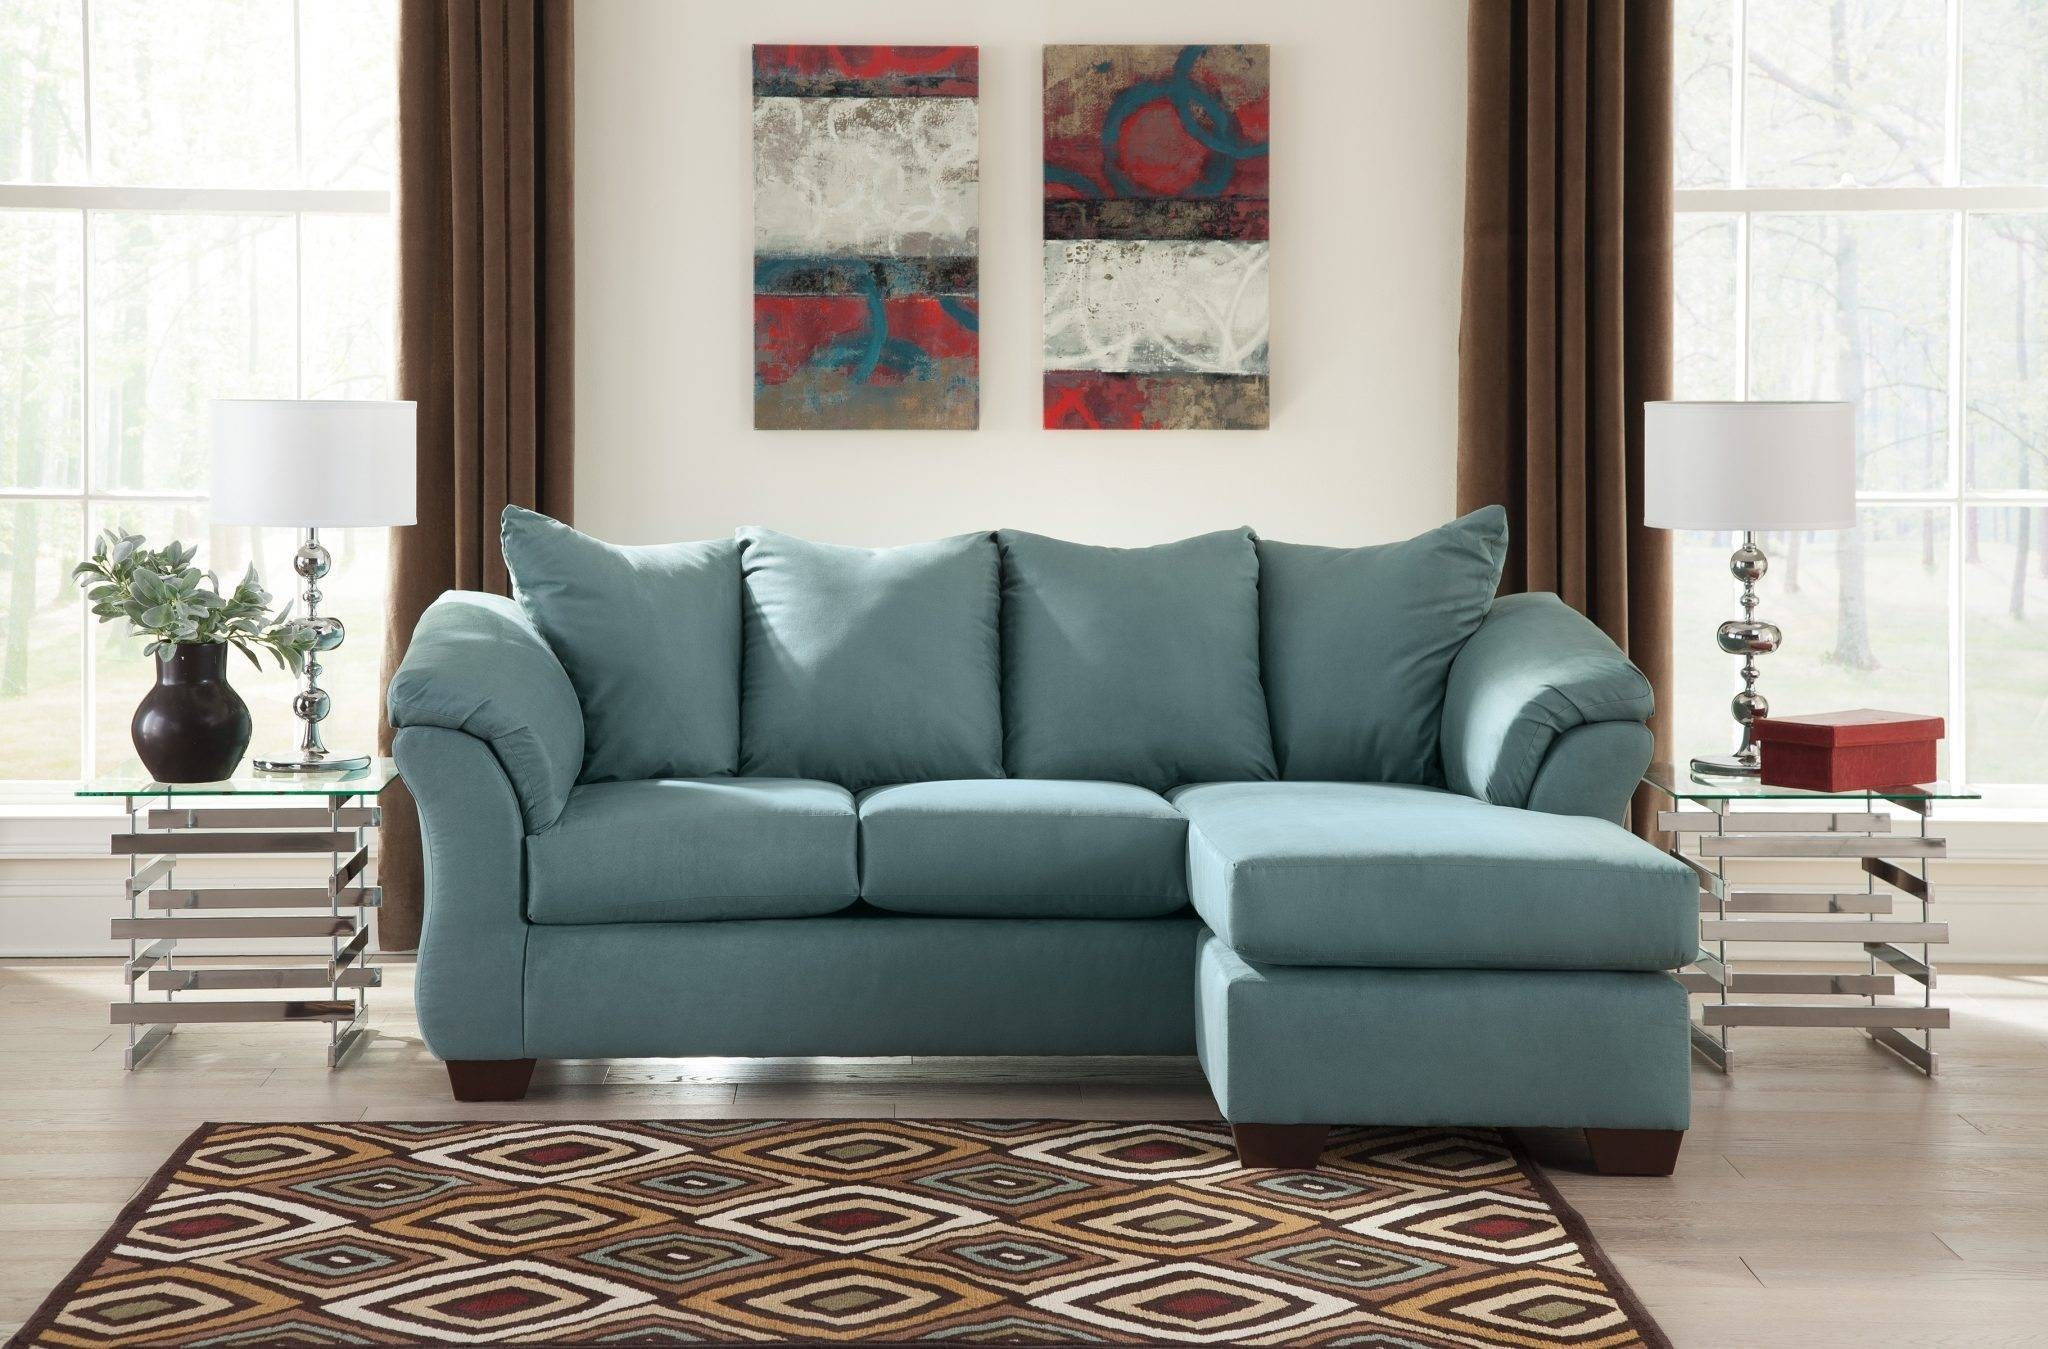 Best Furniture Mentor Oh: Furniture Store - Ashley Furniture within Chaise Sofas (Image 3 of 15)